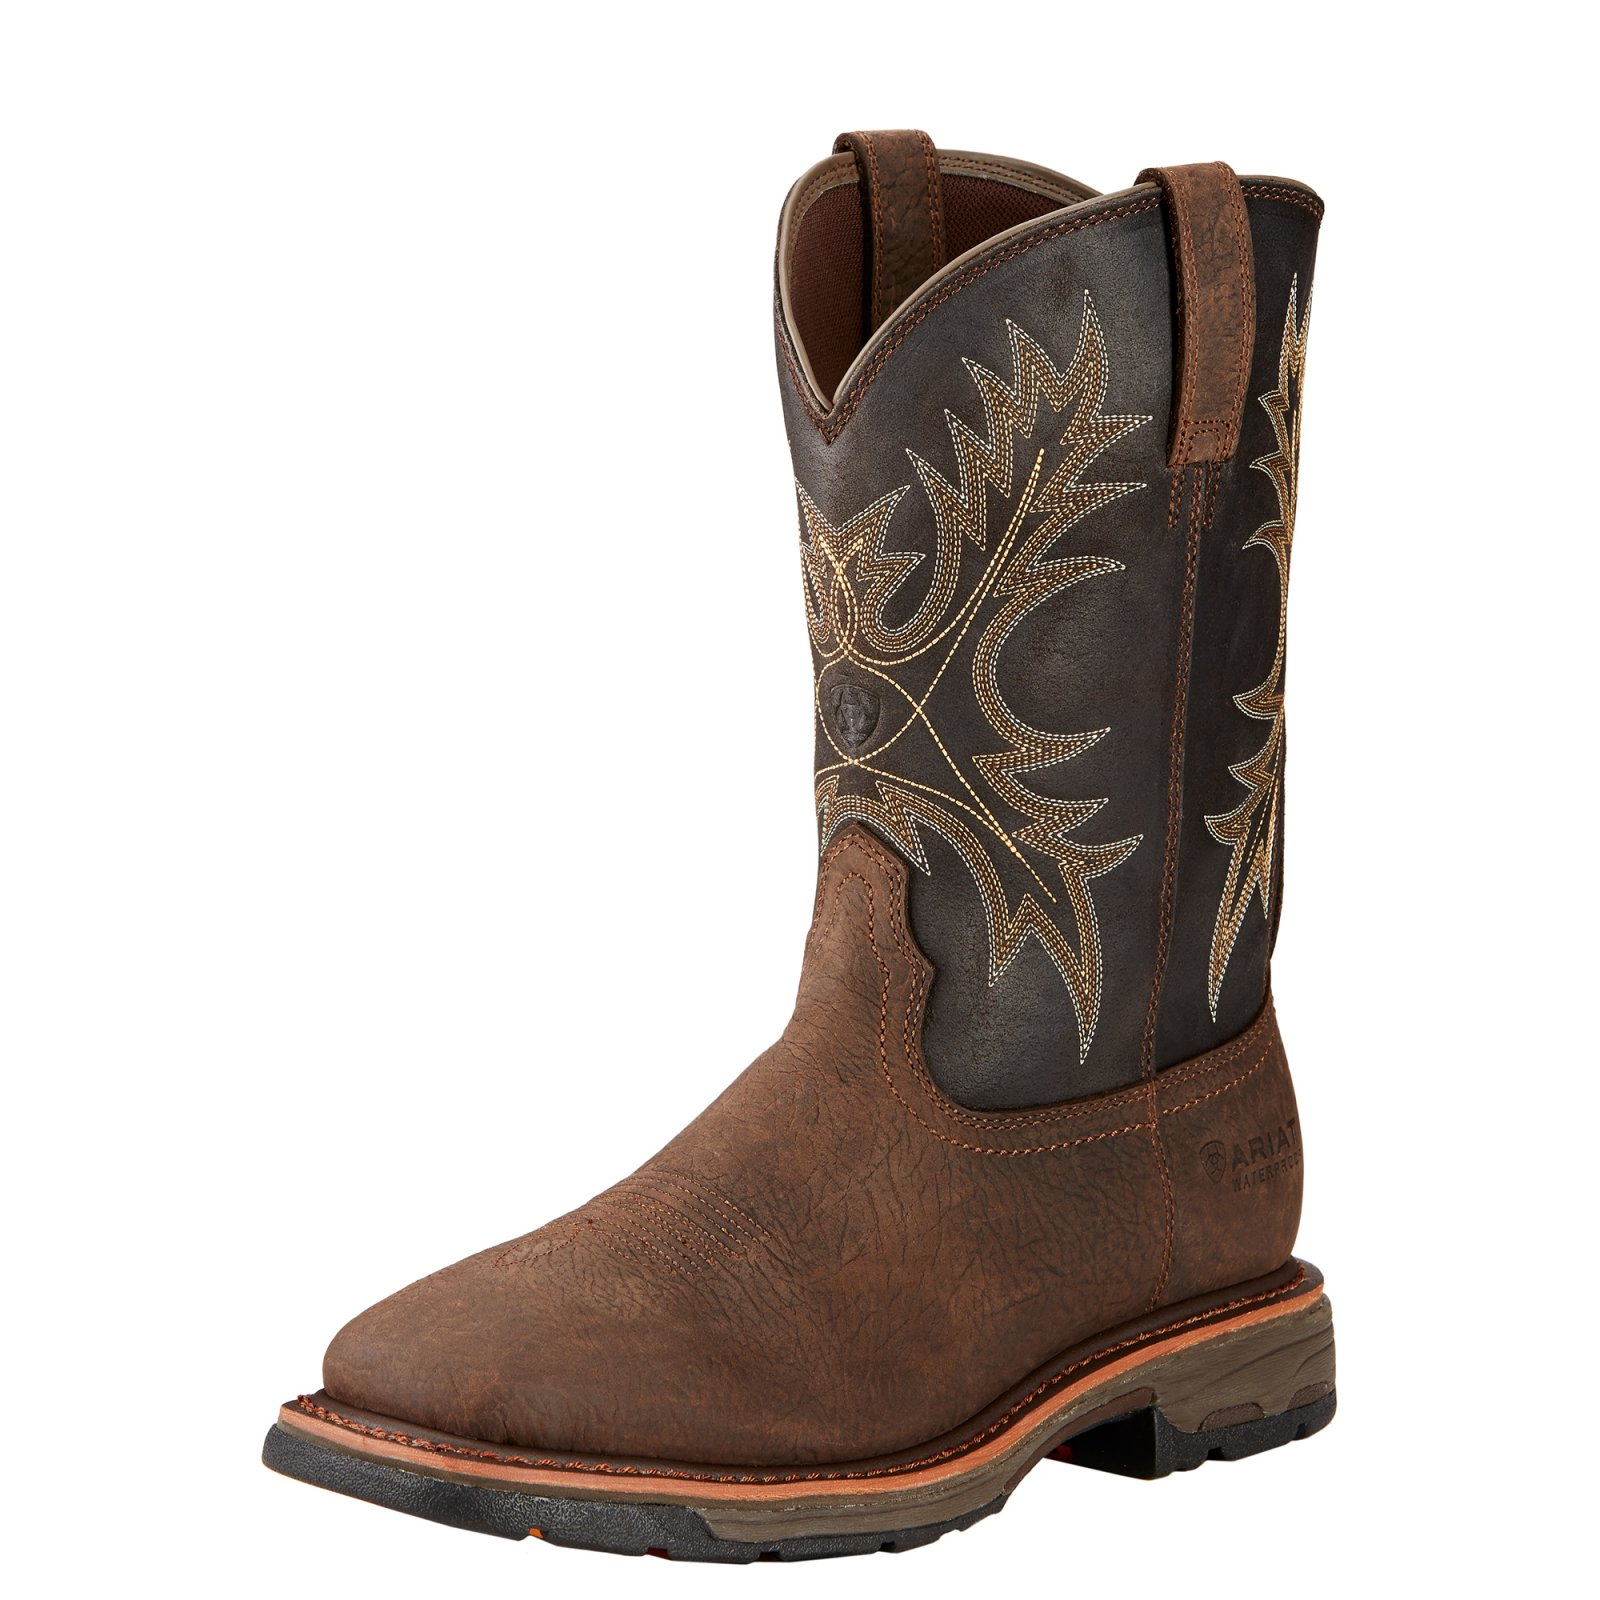 Workhog Waterproof Wide Square Toe Boot from Ariat